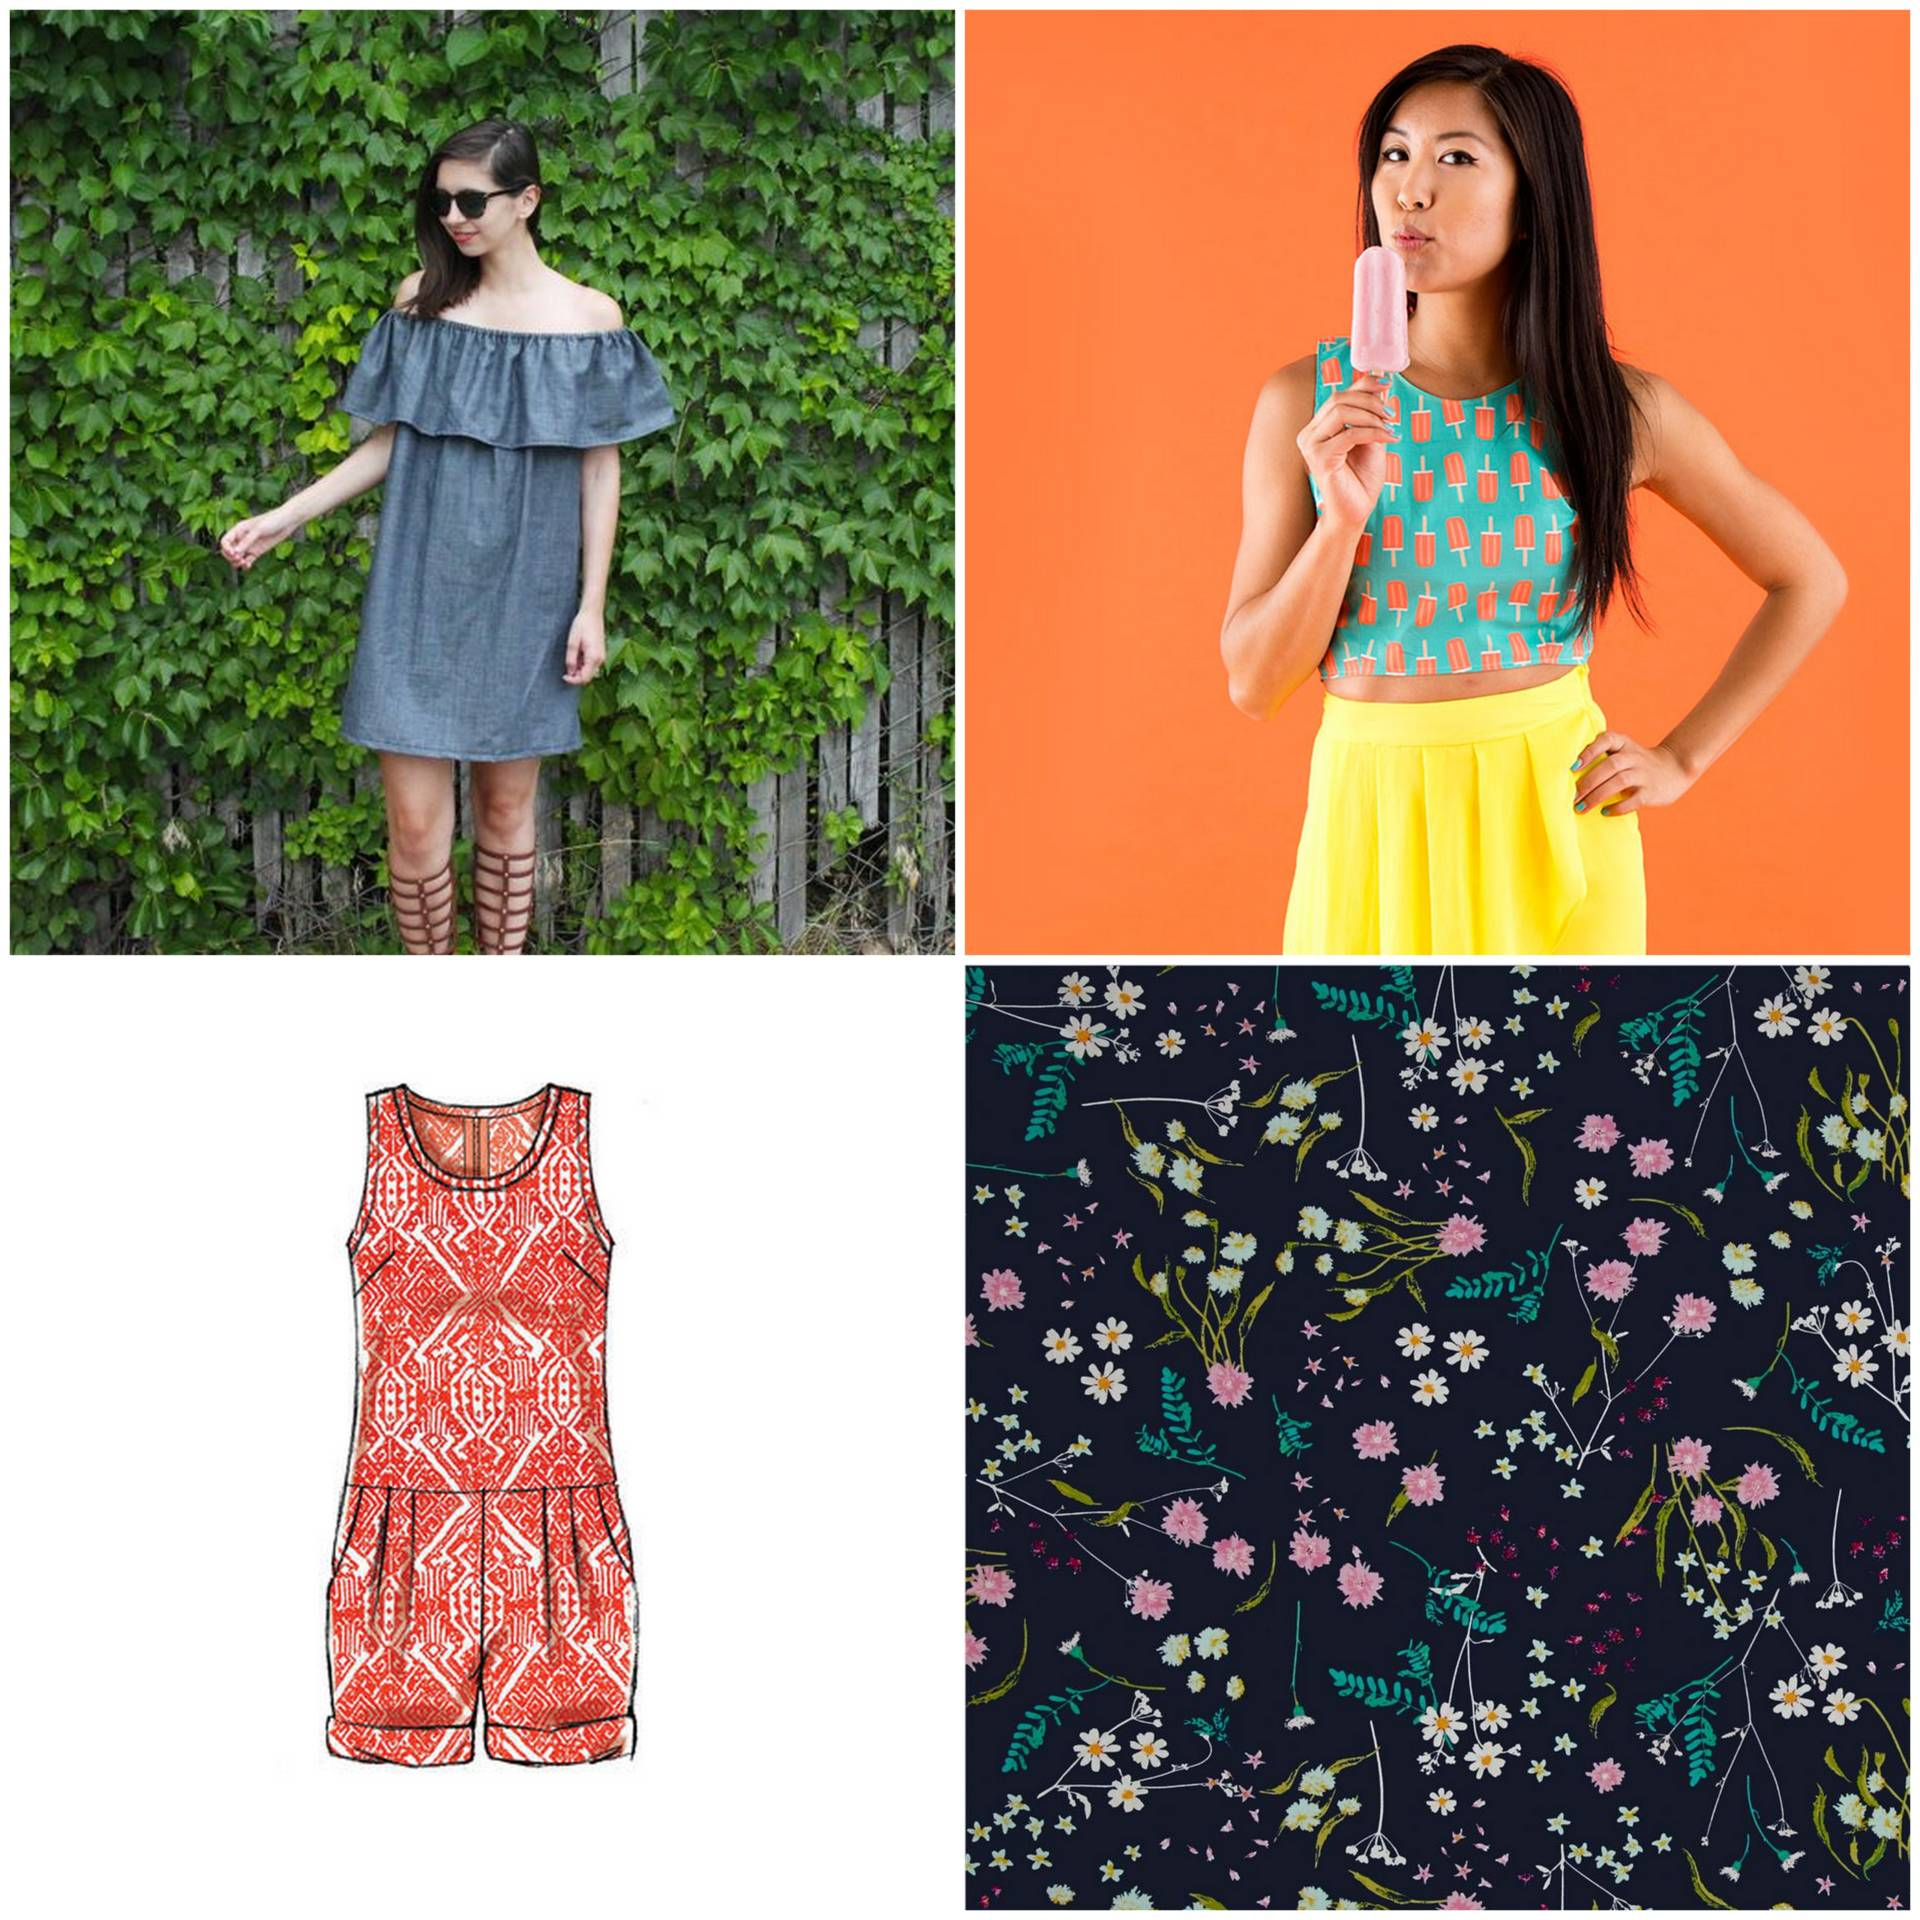 Summer Fashion DIY roundup